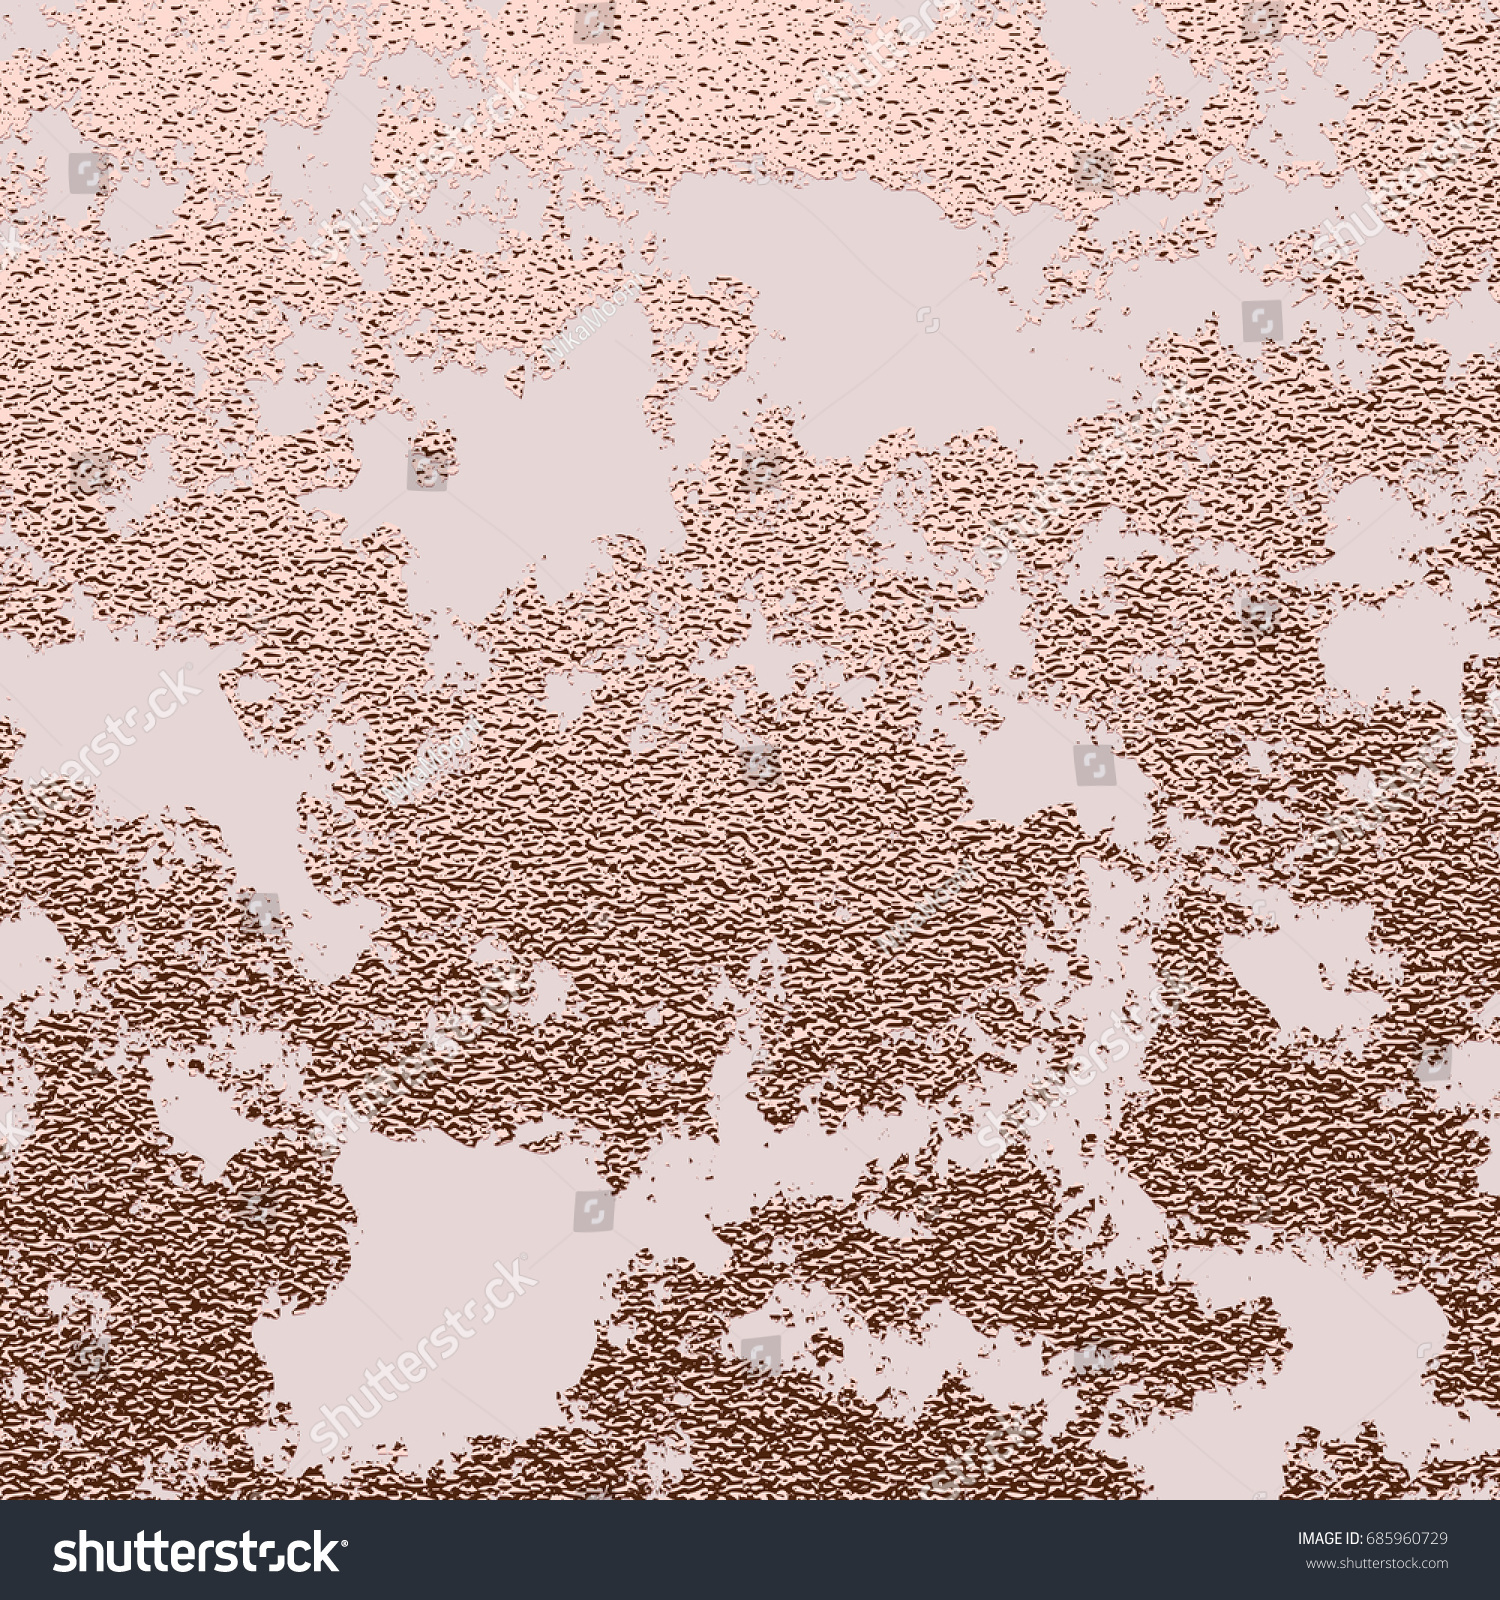 Rose Gold Marble Background Abstract Marbled Stock Vector 685960729 - Shutterstock